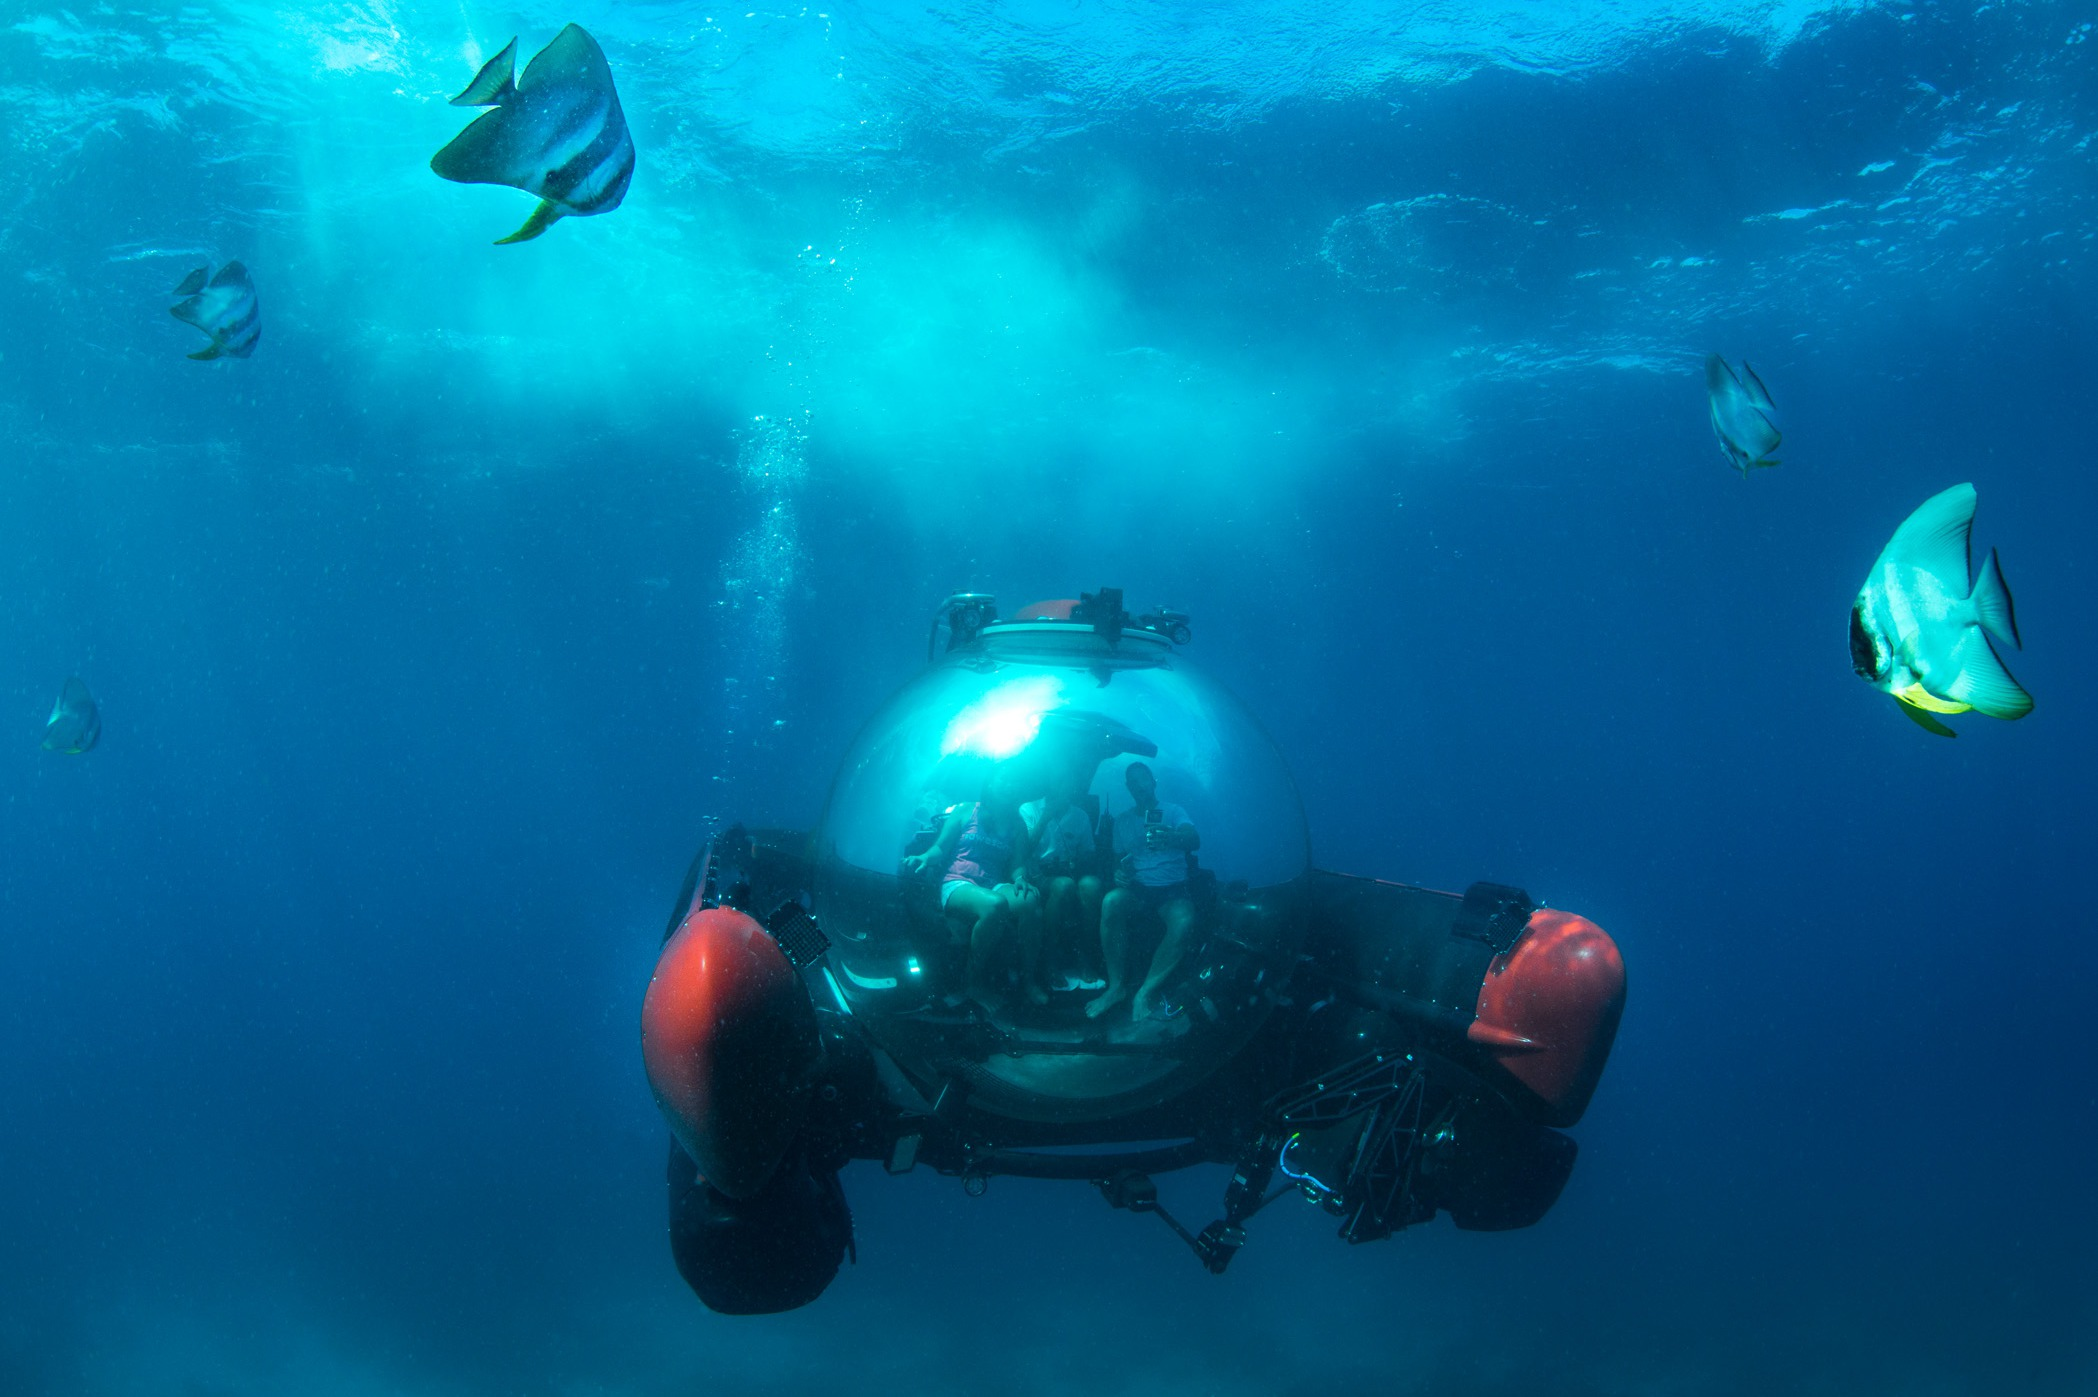 Crystal Cruises - Crystal Esprit submersible underwater